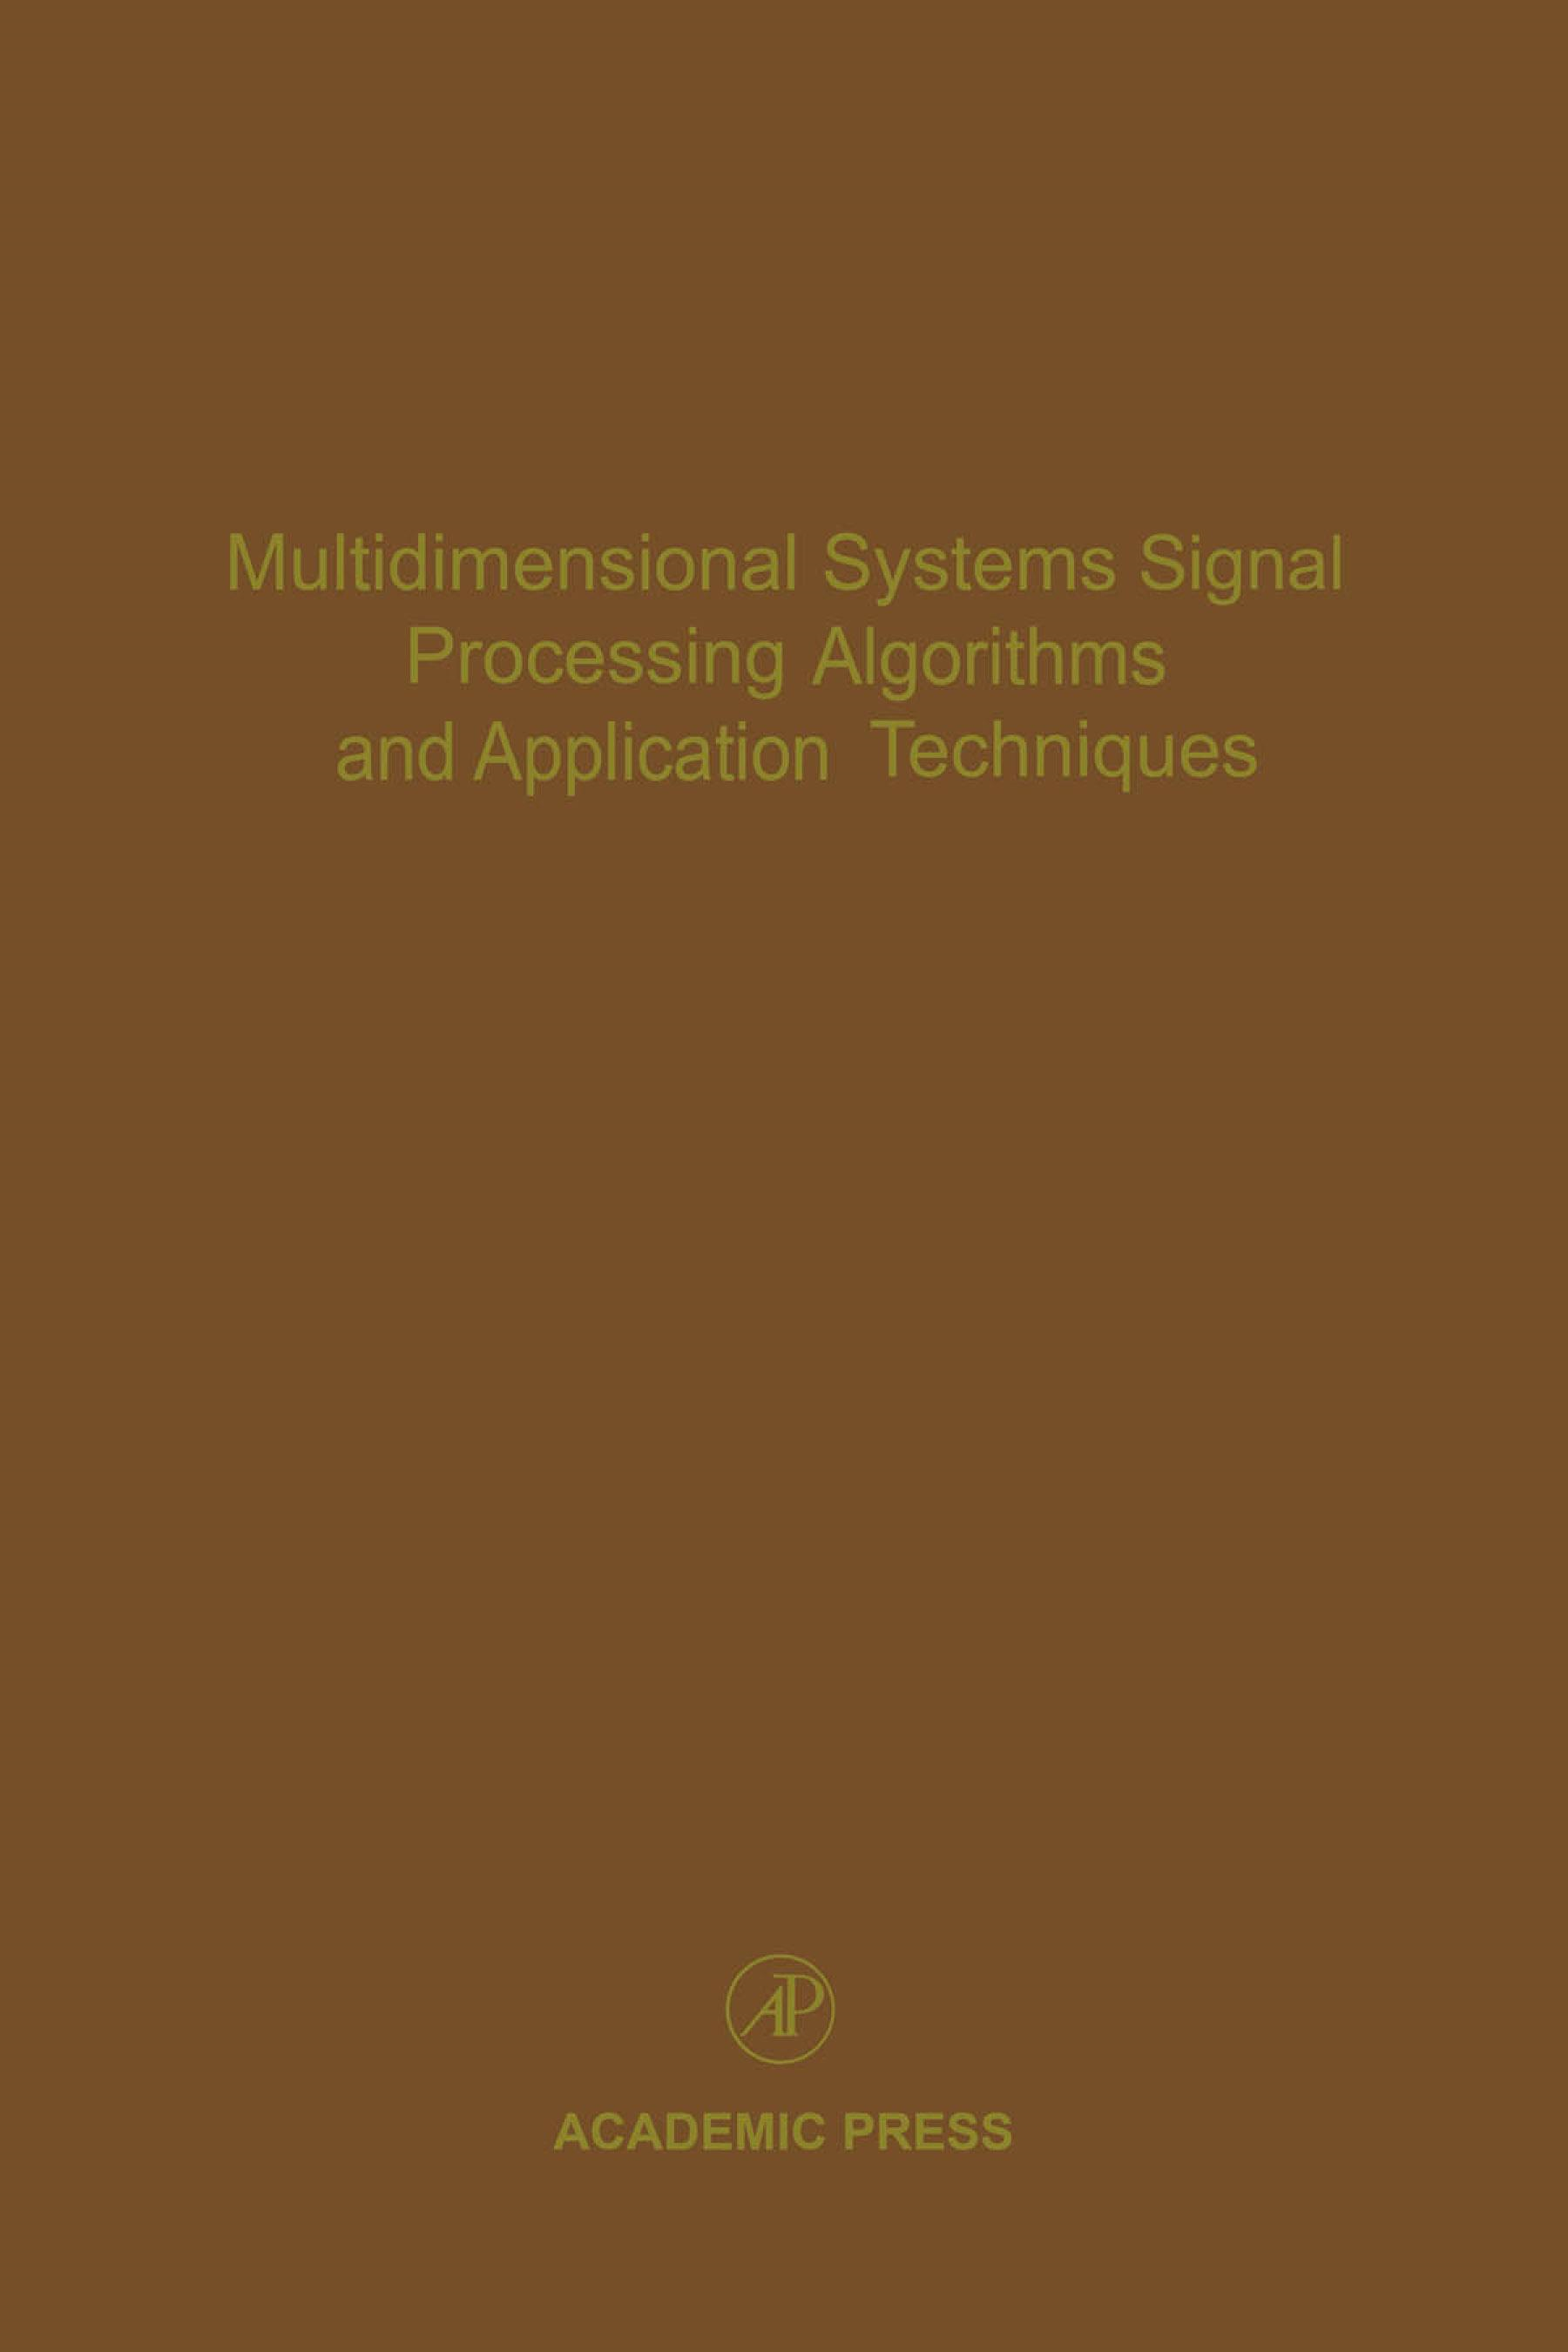 Multidimensional Systems Signal Processing Algorithms and Application Techniques: Advances in Theory and Applications